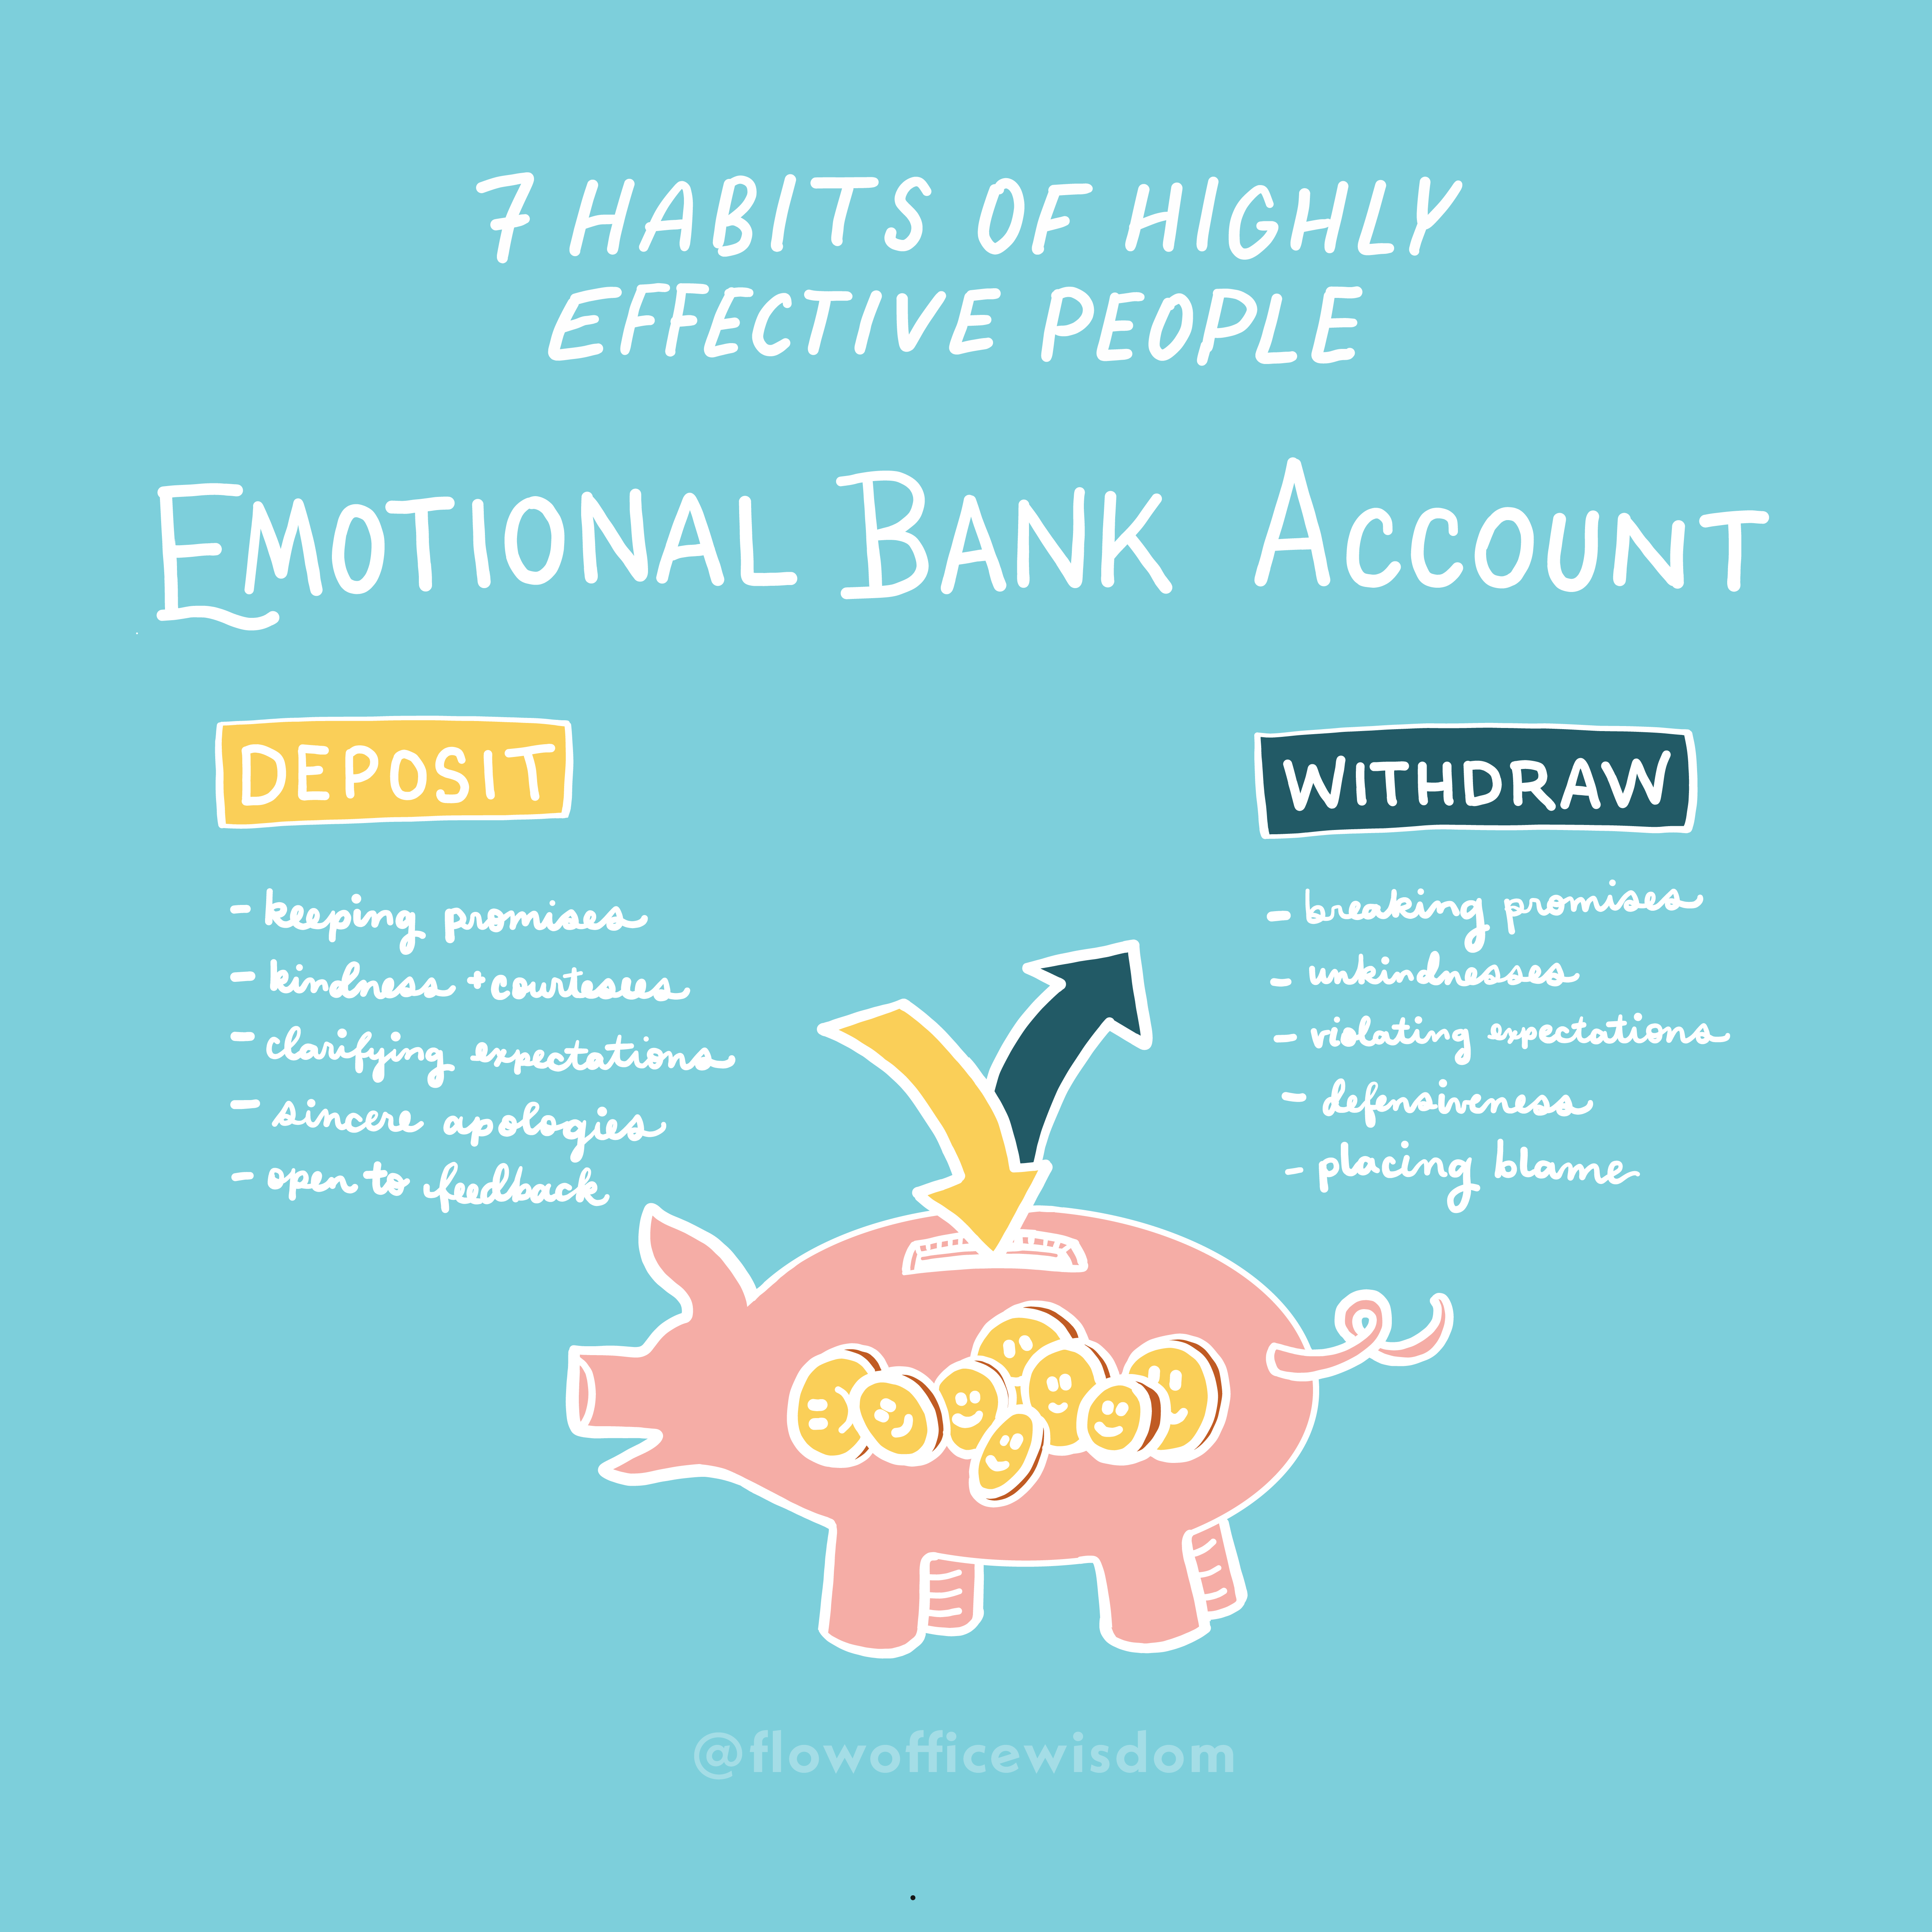 Habit 6: Emotional Bank Account